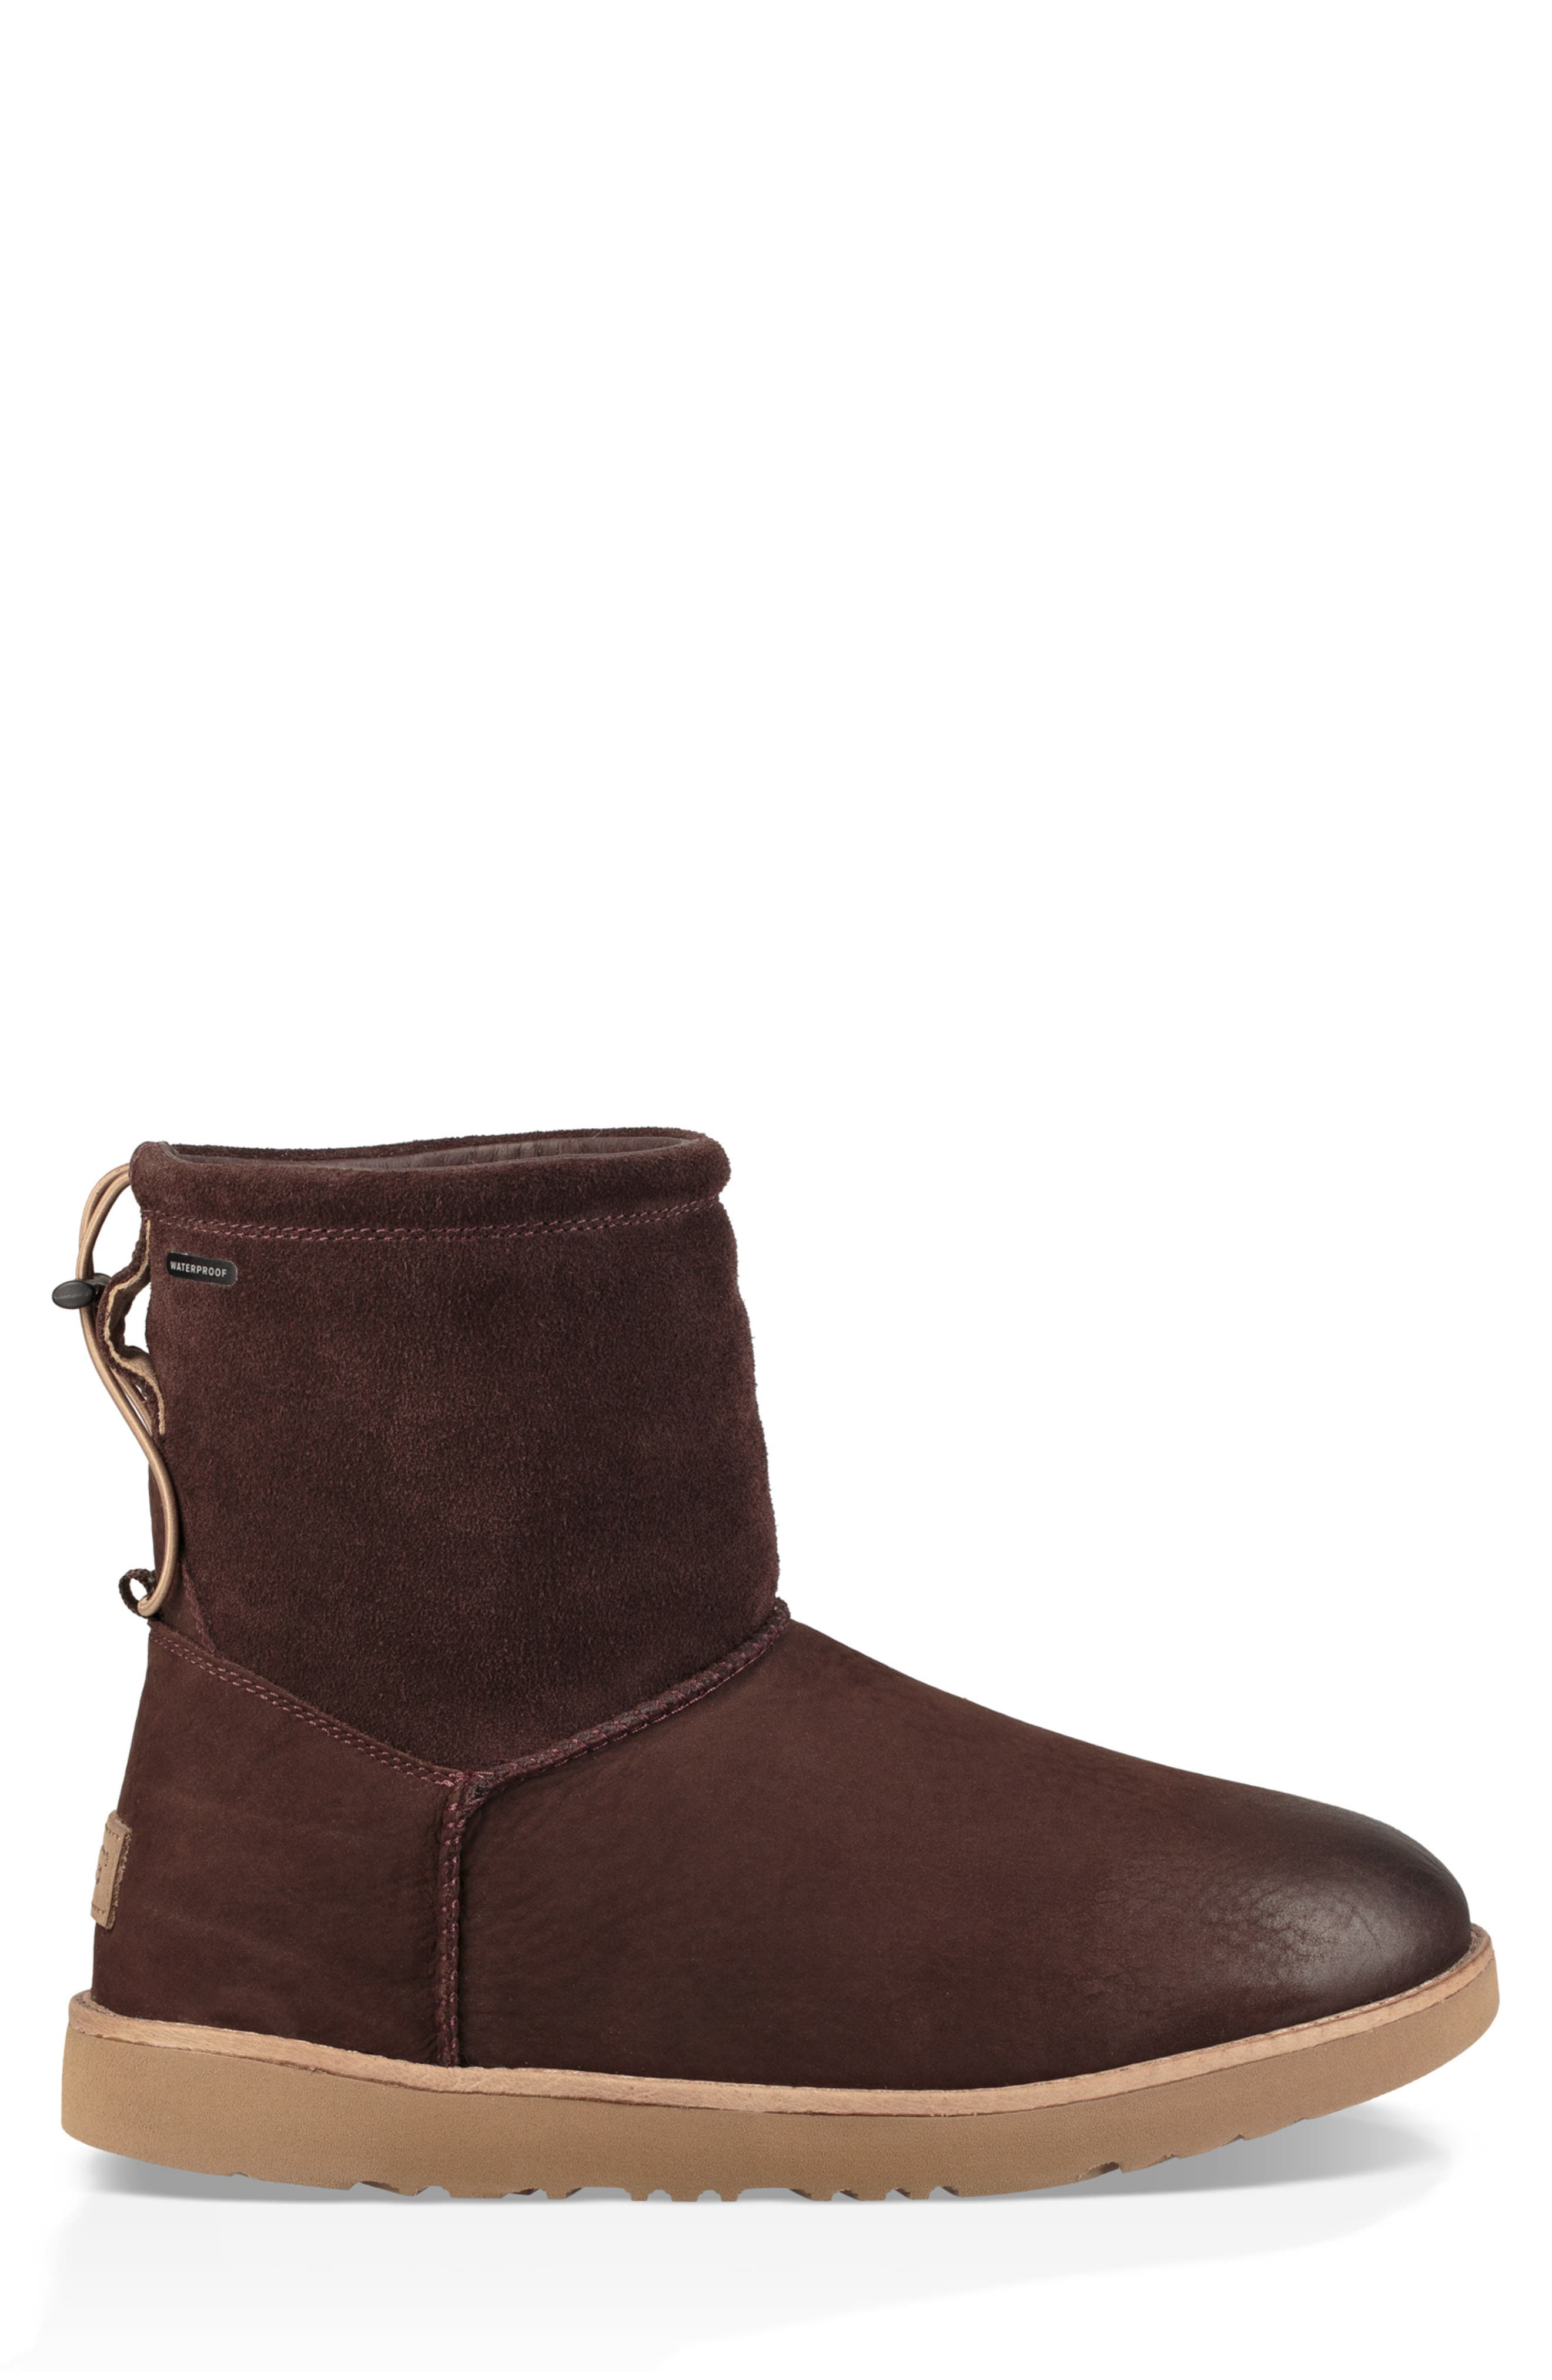 Classic Waterproof Boot,                             Alternate thumbnail 3, color,                             STOUT